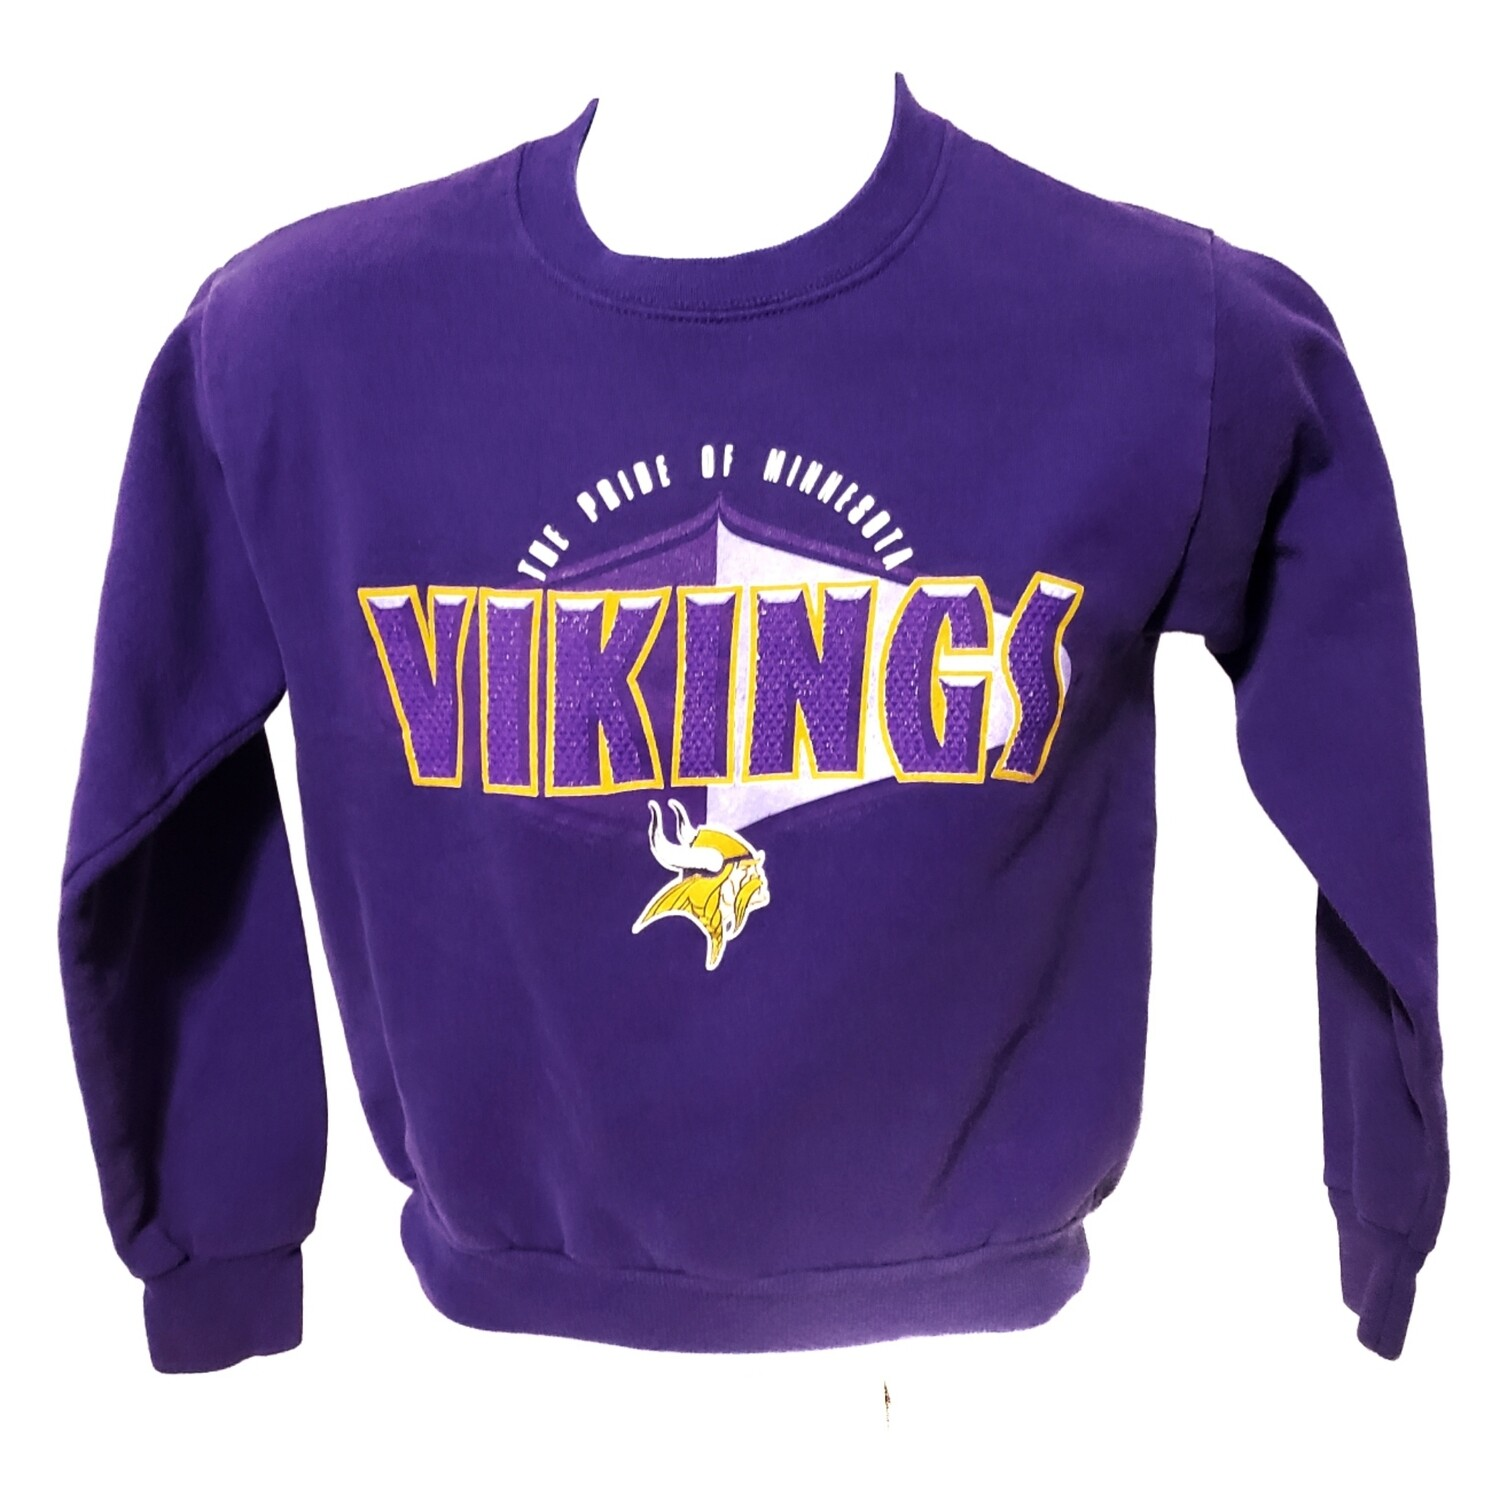 Retro Minnesota Vikings Crewneck